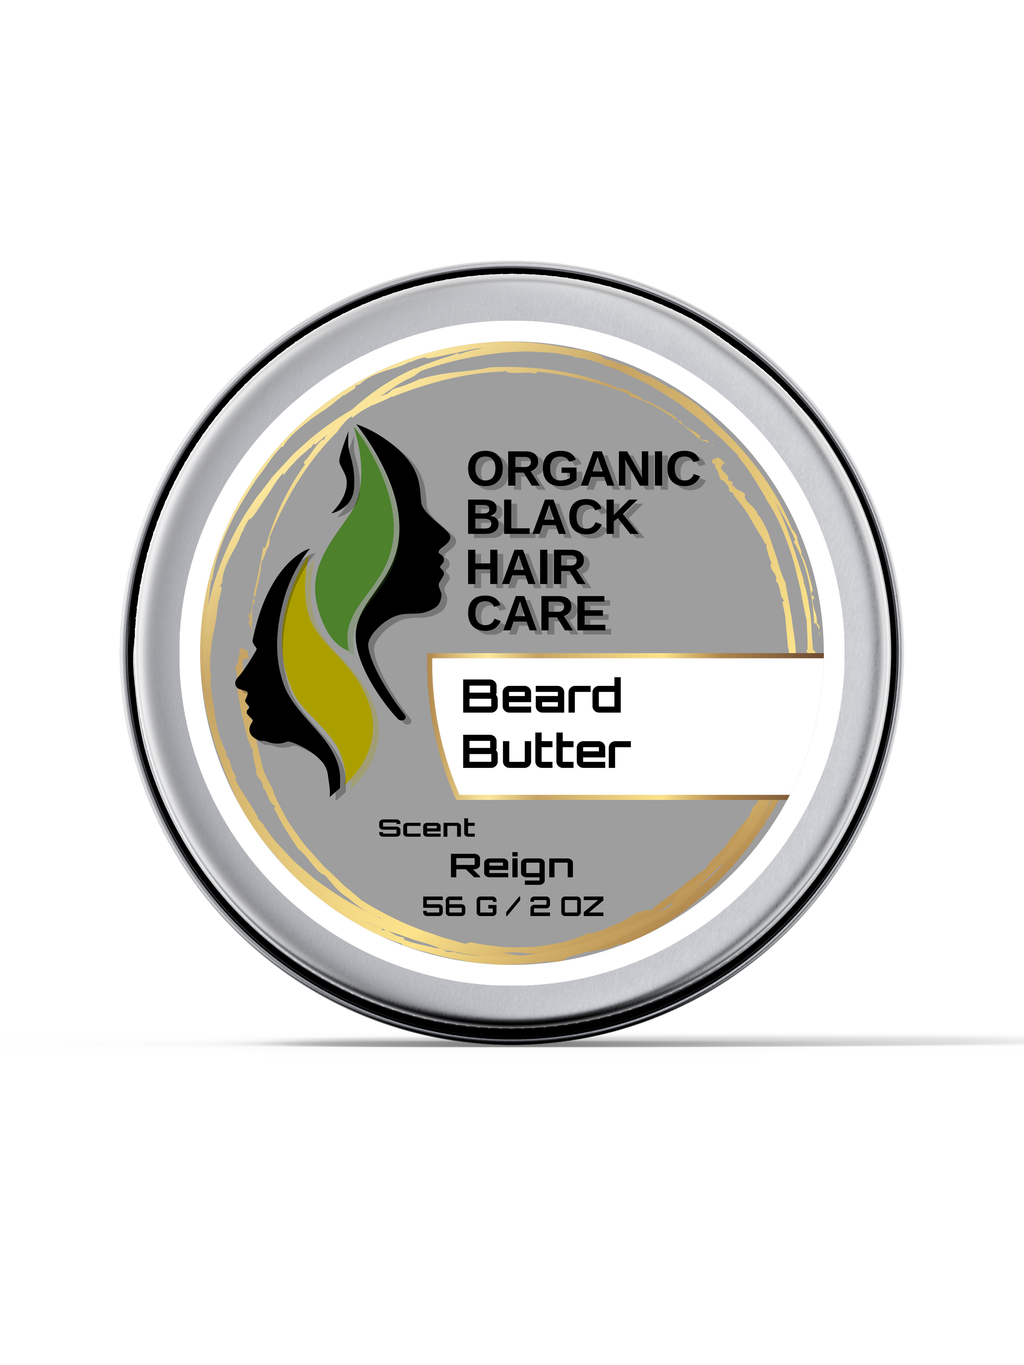 Plant-Based Beard Butter (Jojoba Butter, Moringa Butter, etc)